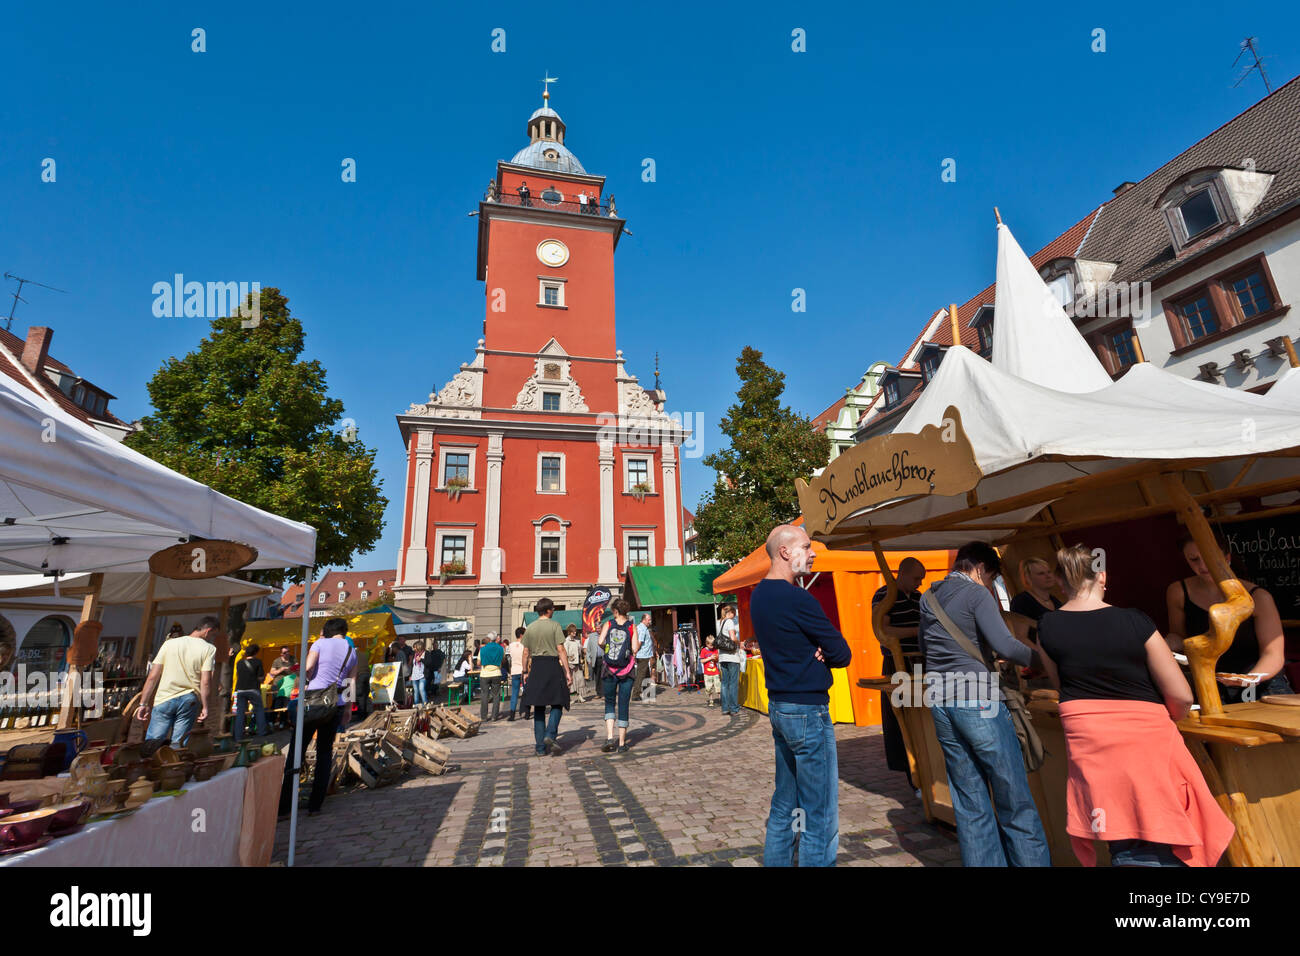 ARTS AND CRAFTS MARKET, HAUPTMARKT SQUARE, MARKET, TOWN HALL, GOTHA, THURINGIA, GERMANY - Stock Image